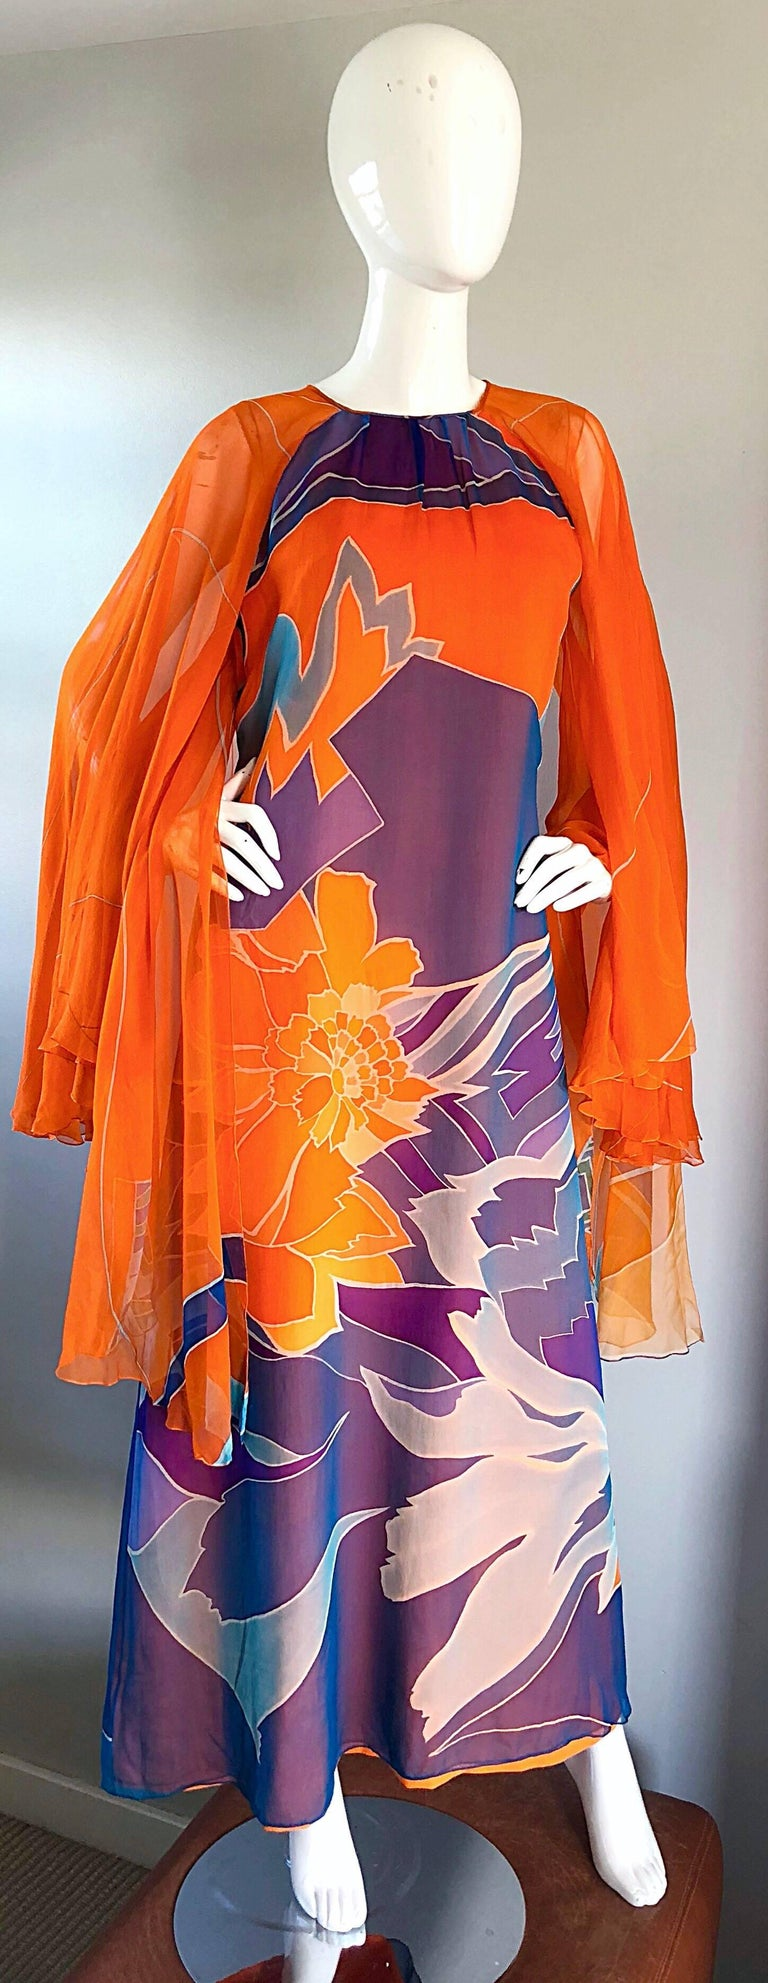 1970s Hanae Mori Couture Bright Orange Silk Chiffon Vintage Caftan Maxi Dress For Sale 2